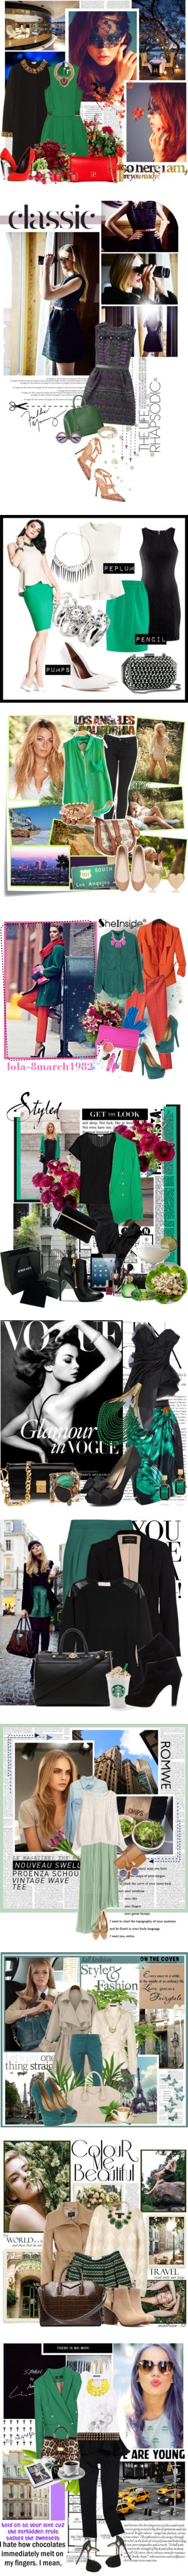 """green"" by natalinova ❤ liked on Polyvore"